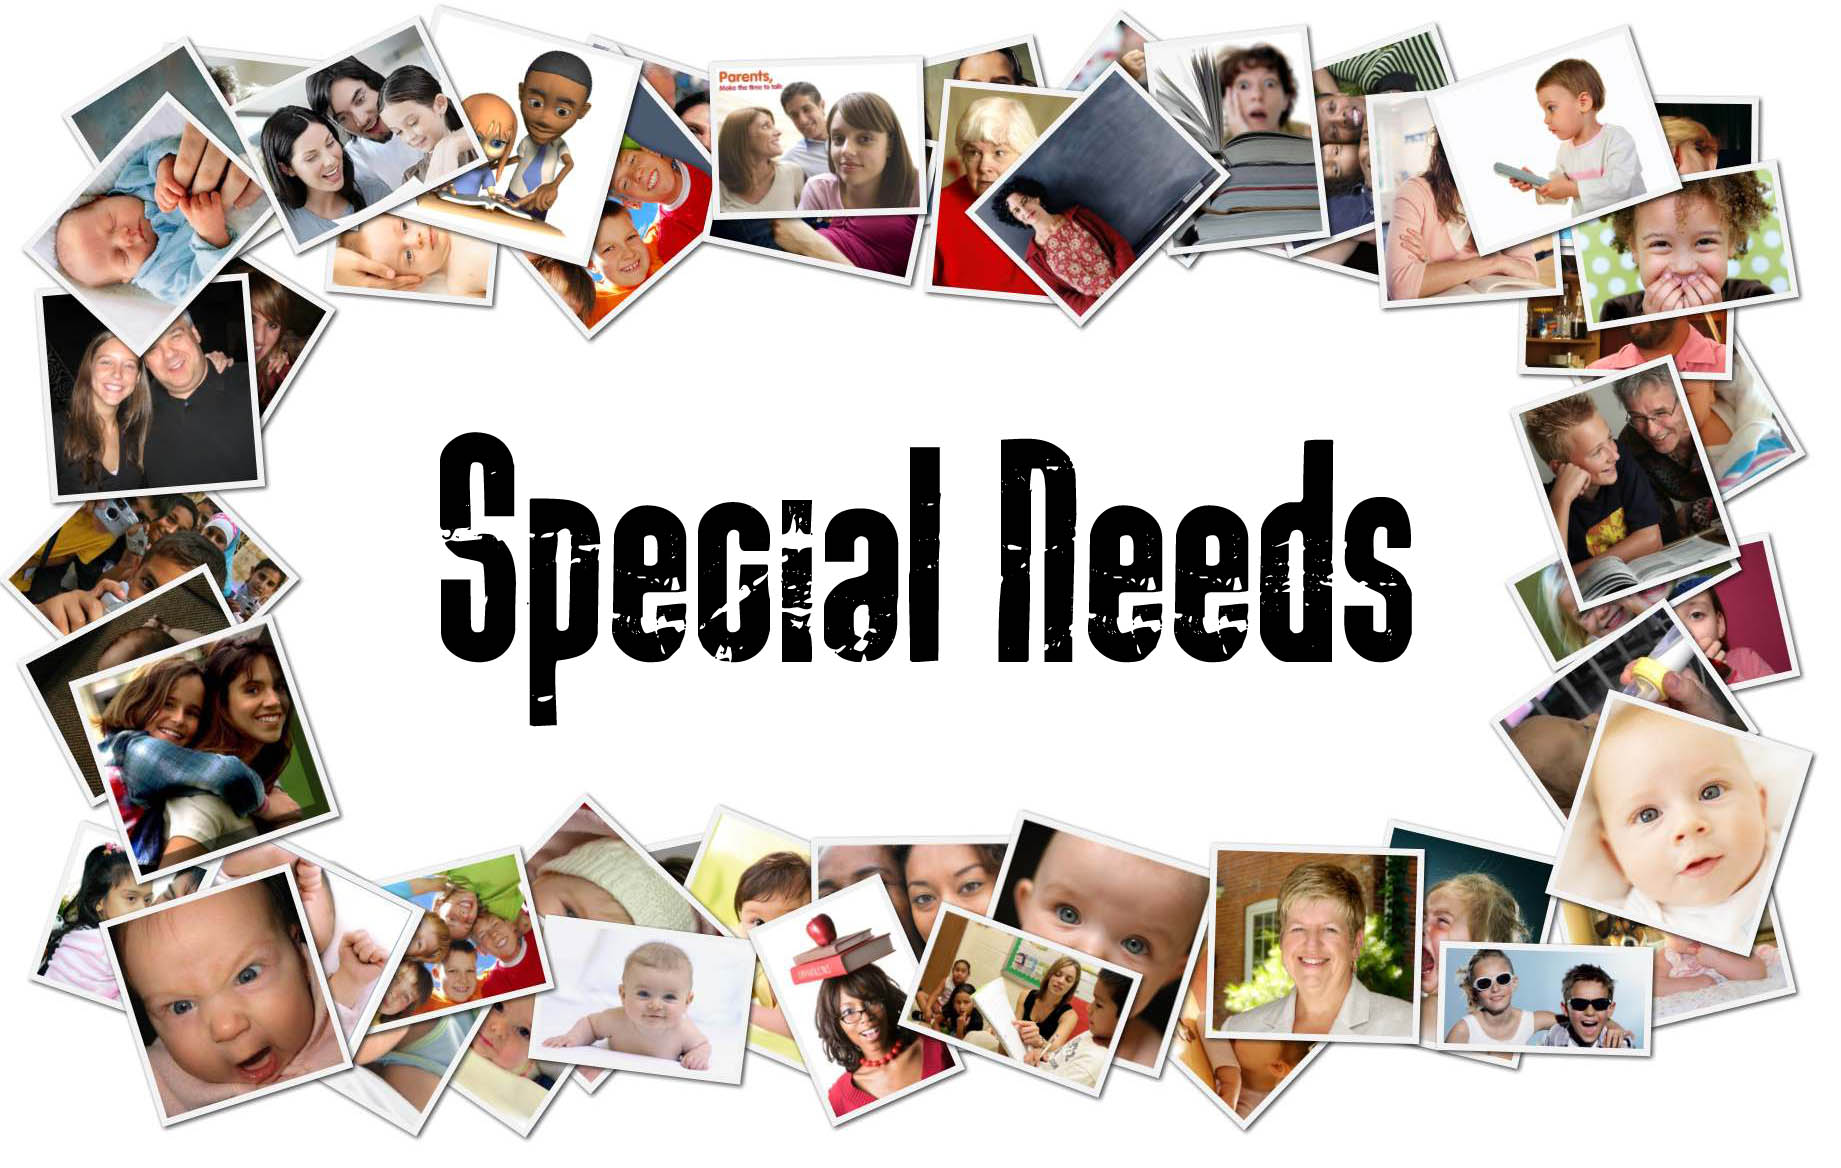 Care for those with Special Needs